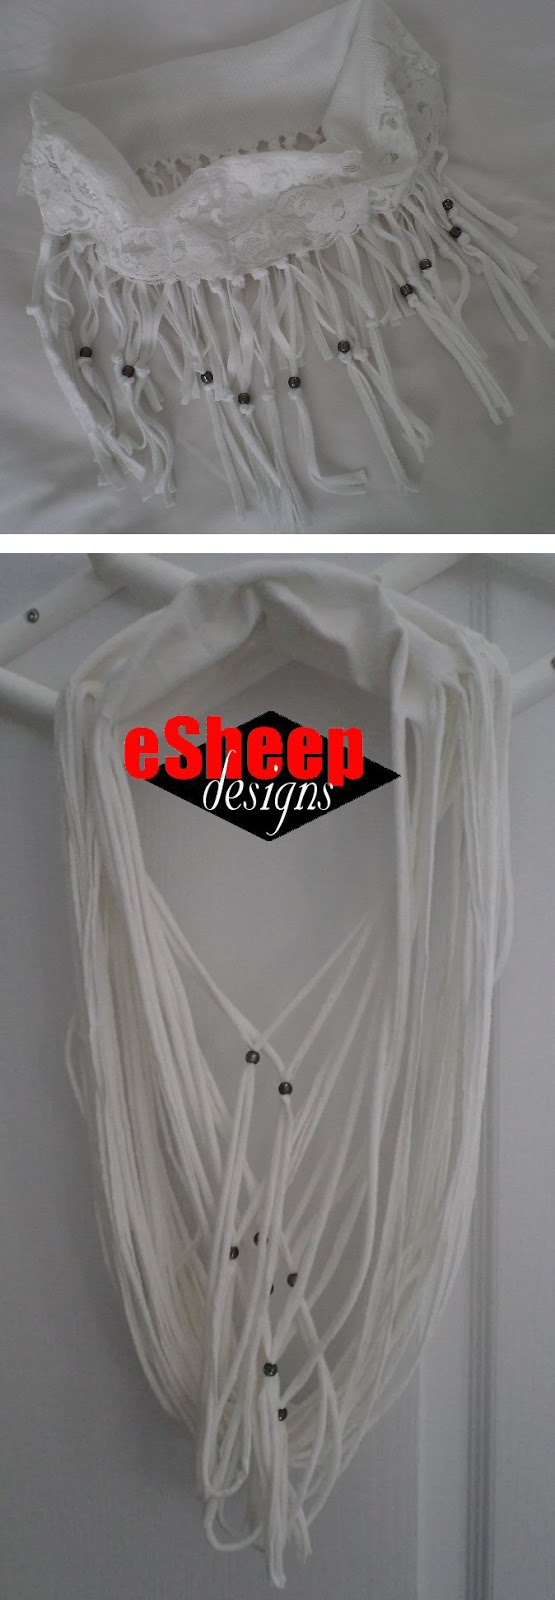 Upcycled t-shirt and tank scarves crafted by eSheep Designs